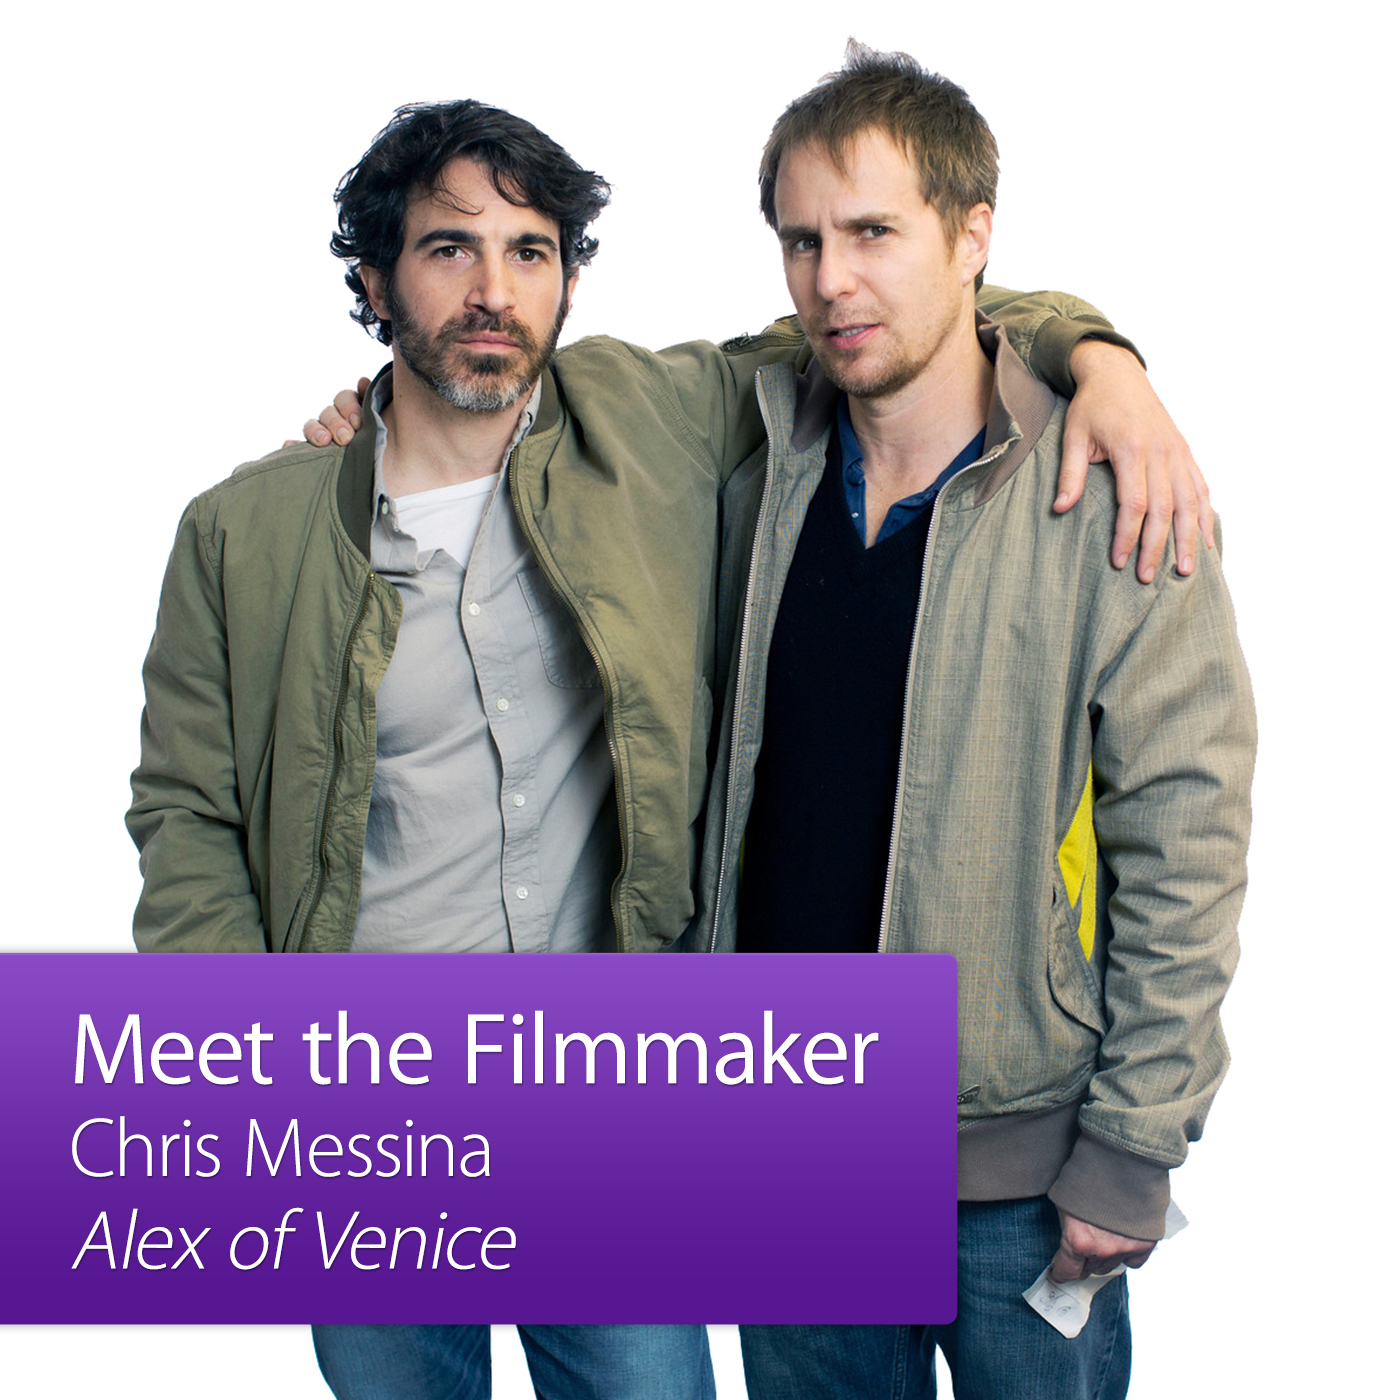 Alex of Venice: Meet The Filmmaker